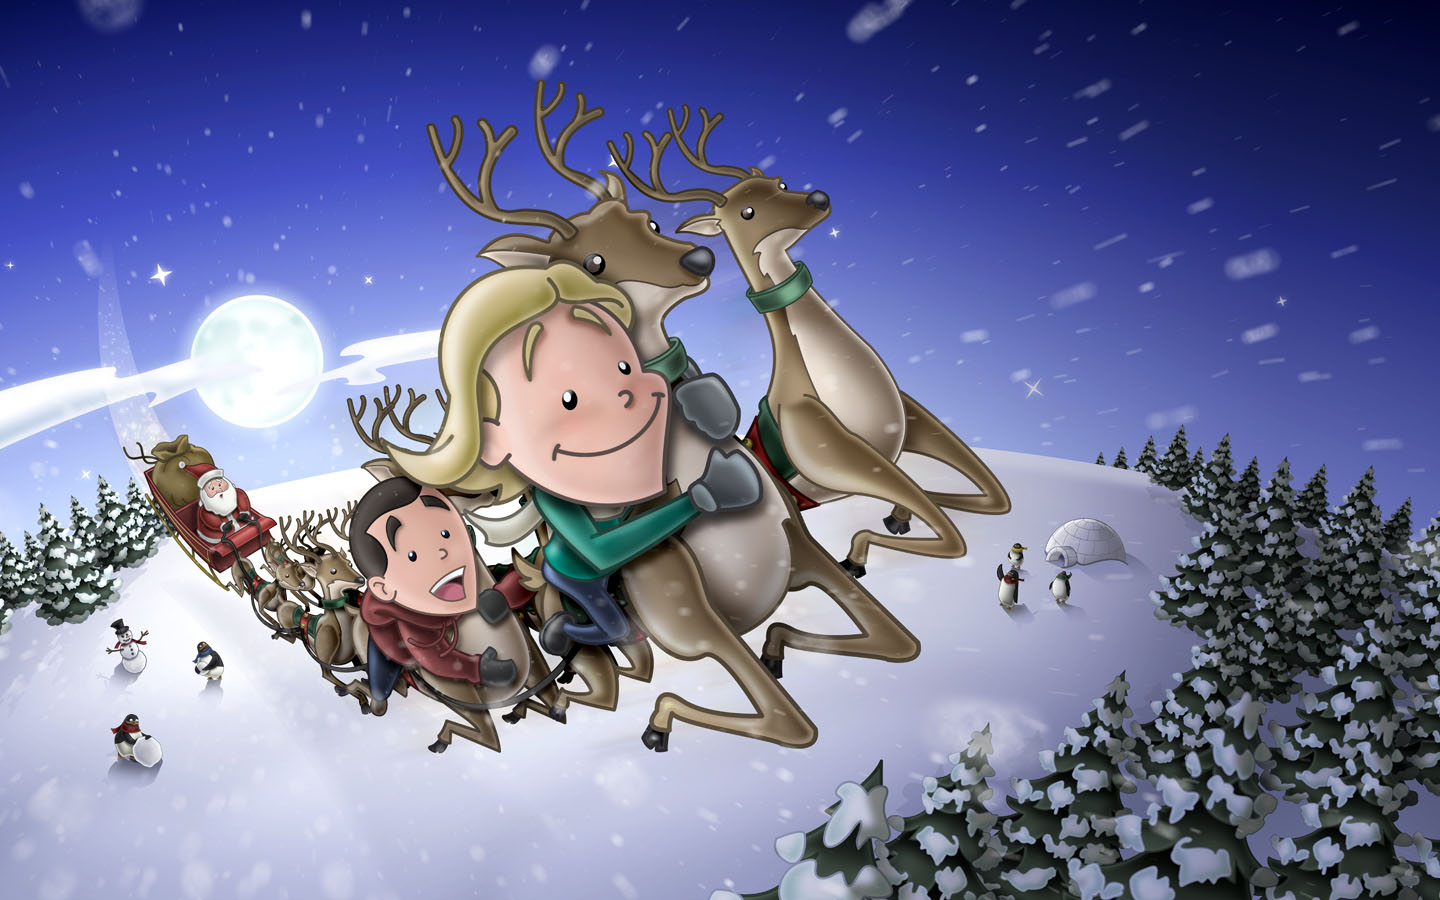 Christmas Wallpaper Snow Falling Kernie Cam Productions Gallery Sleigh Stowaways 2007